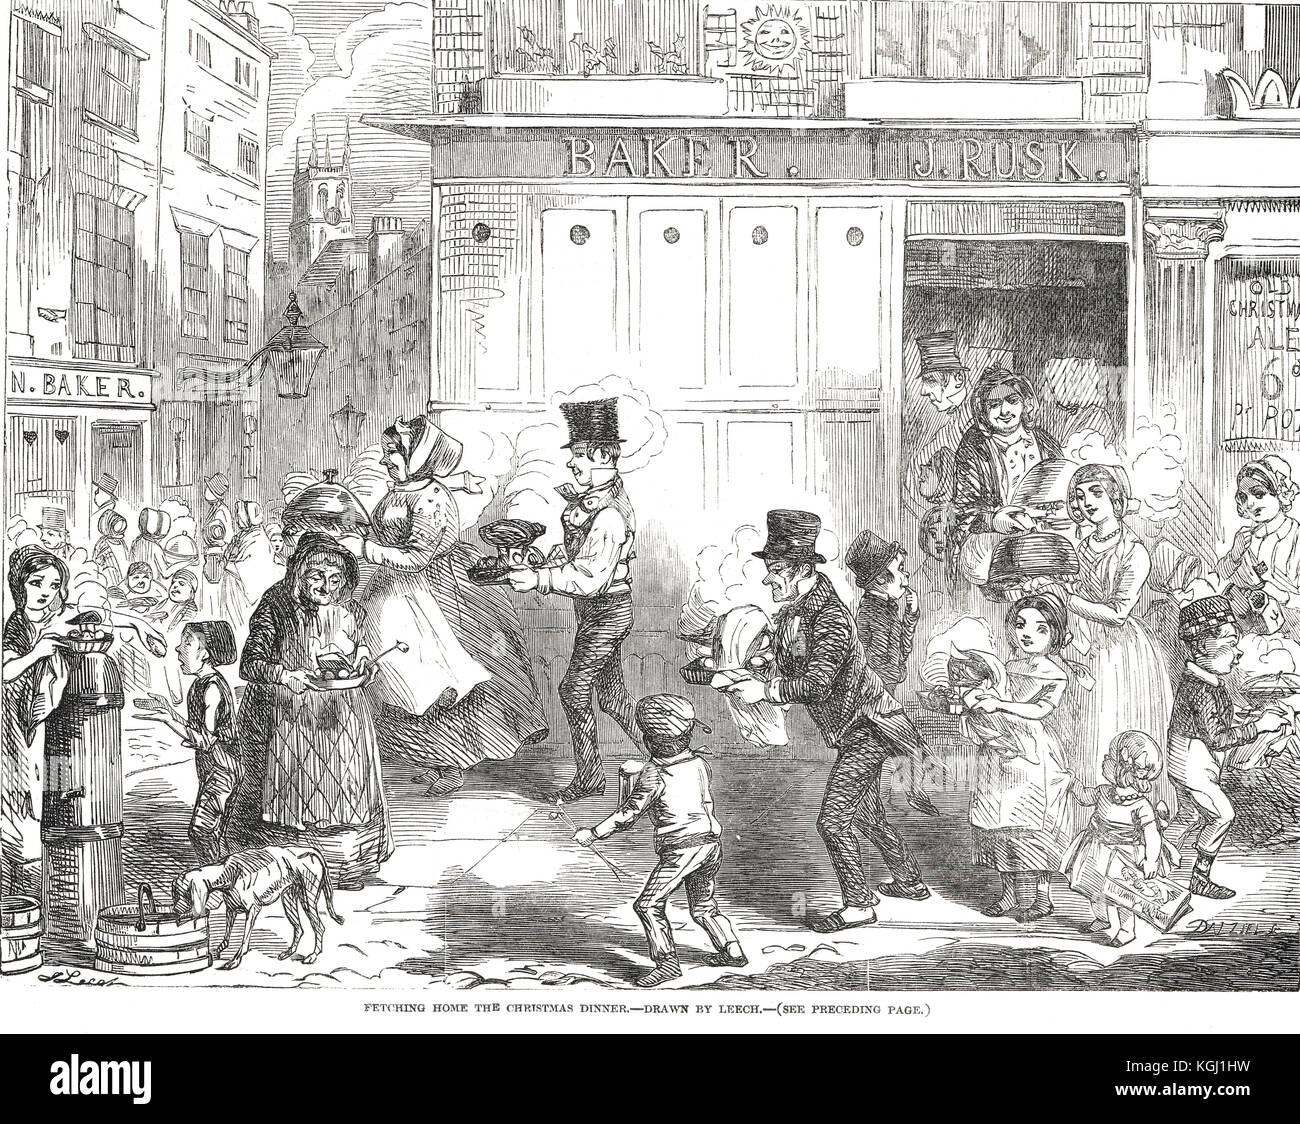 Fetching home the Christmas Dinner 1848 - Stock Image